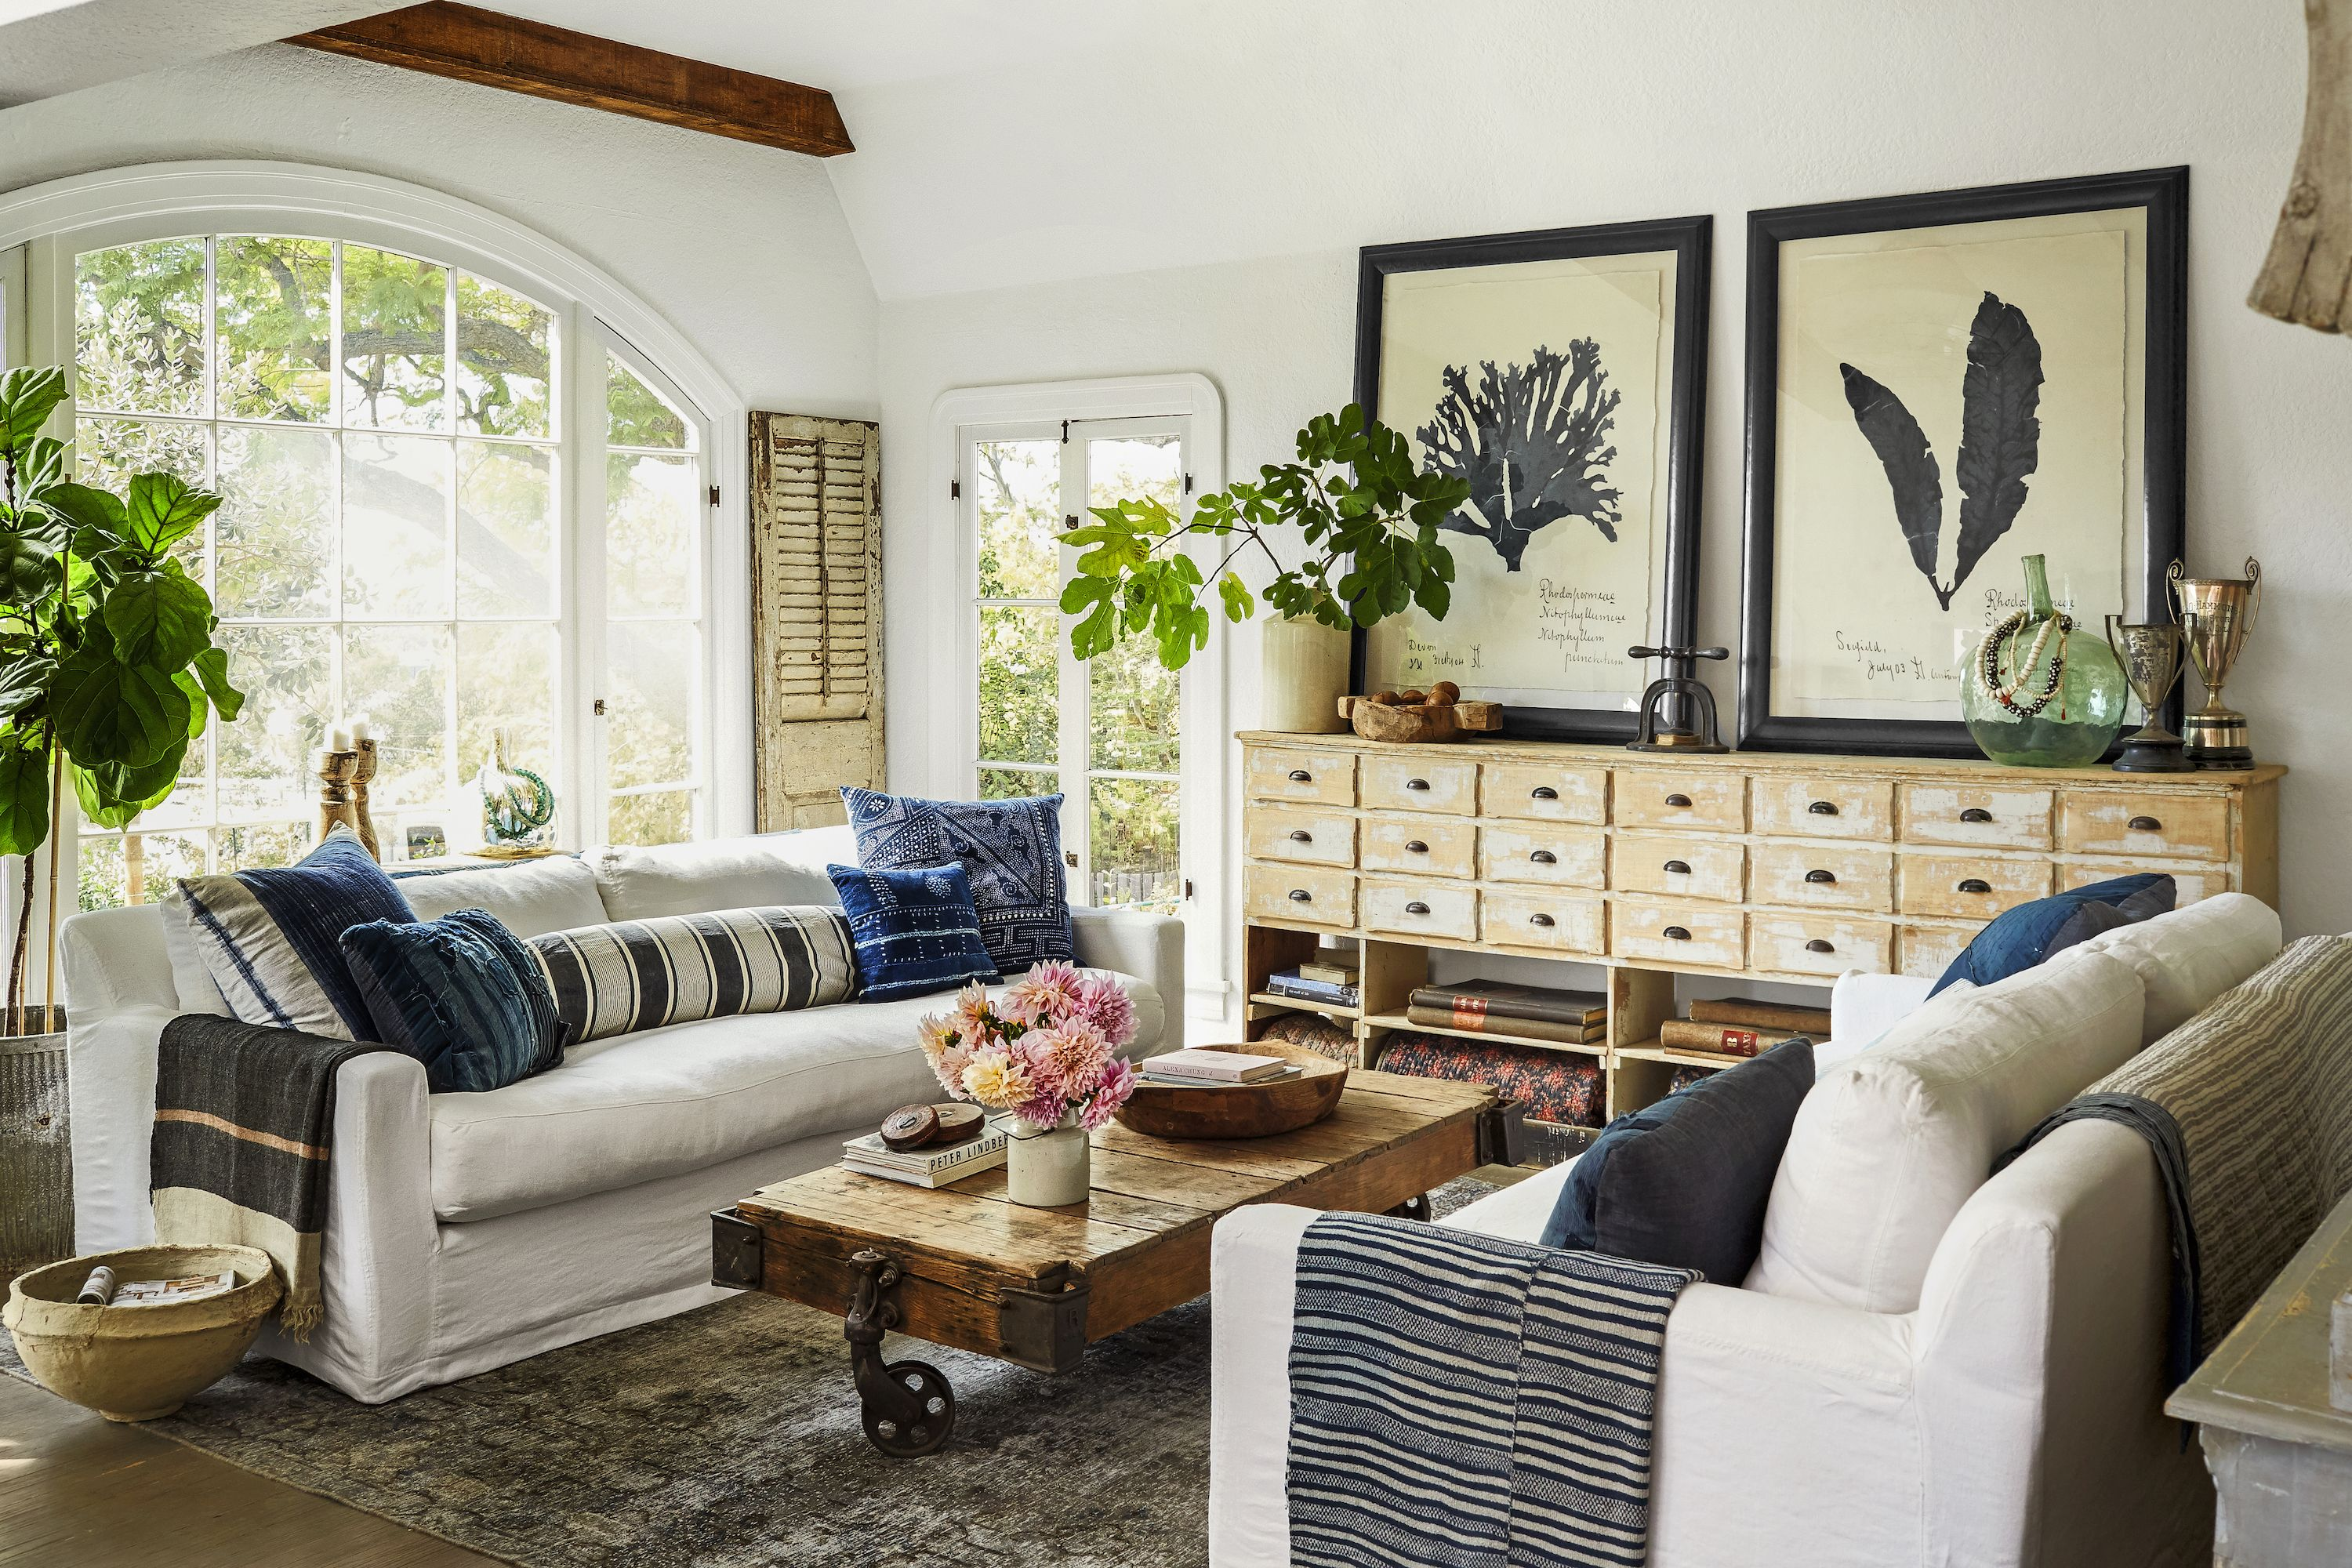 hight resolution of 10 design secrets for a calm and happy home how to create a peaceful interior design peaceful interior design